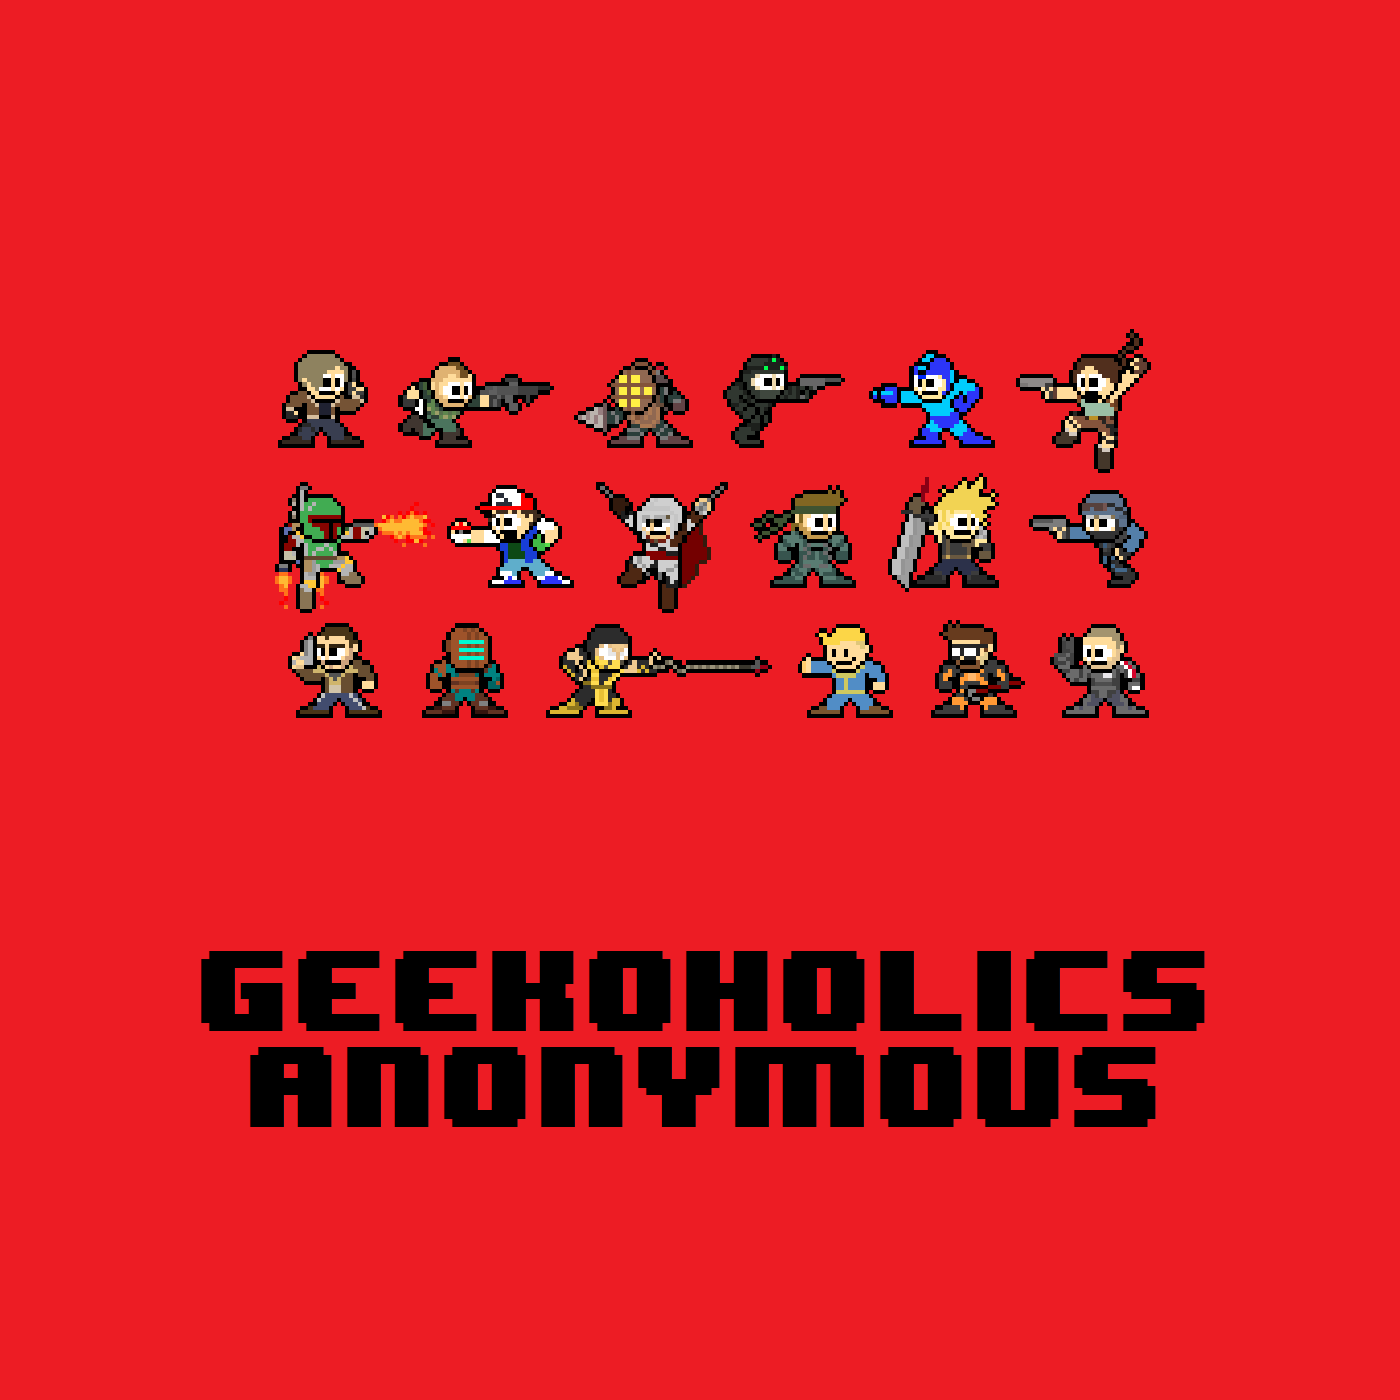 The Christmas Episode, Cyberpunk 2077, Marvel's Avengers and more - Geekoholics Anonymous Podcast 286 show art